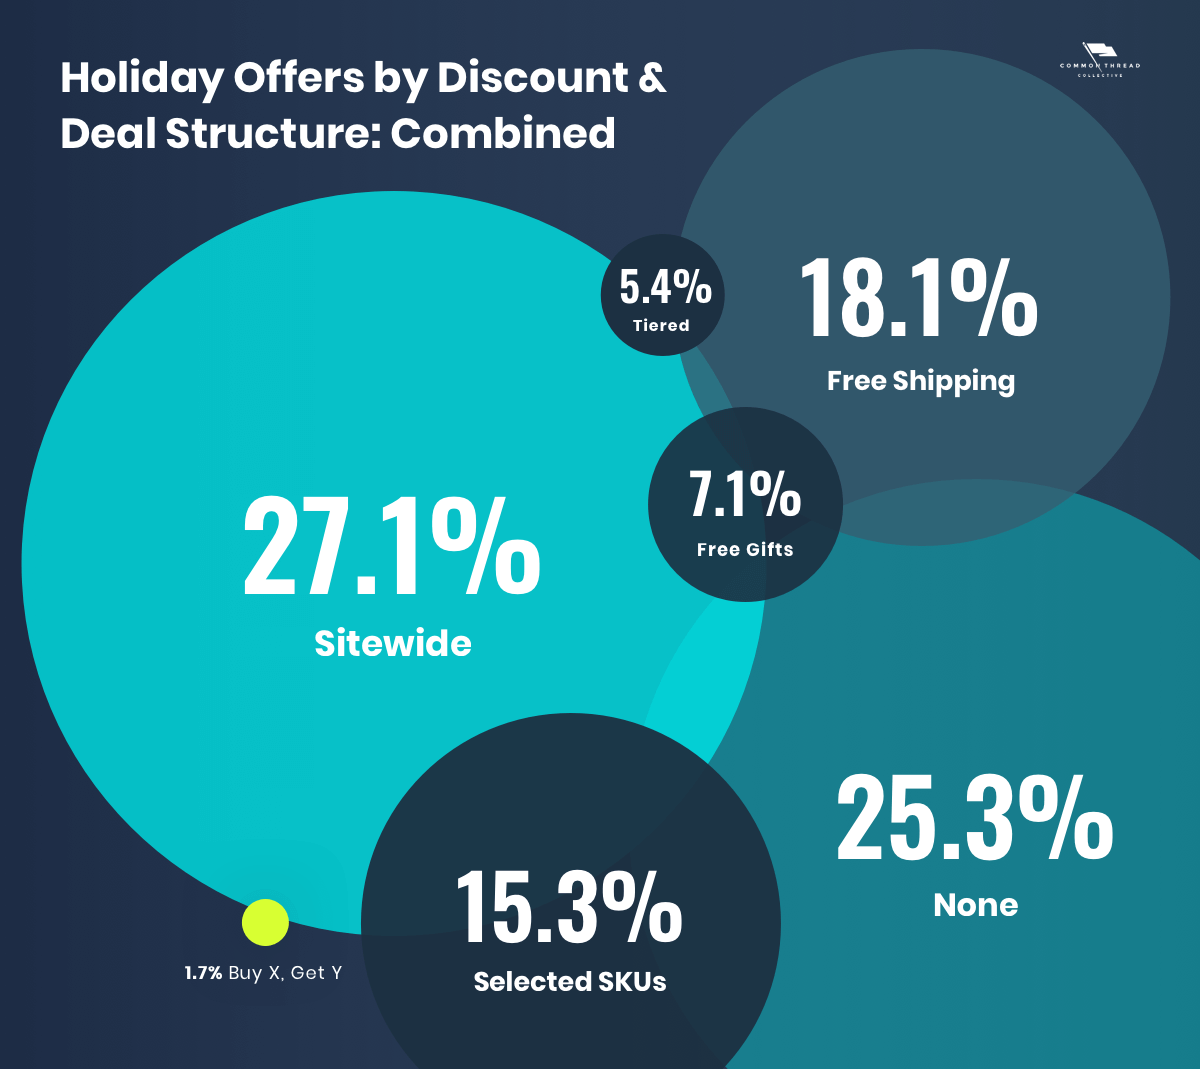 Ecommerce holiday offers by discount and deal structure